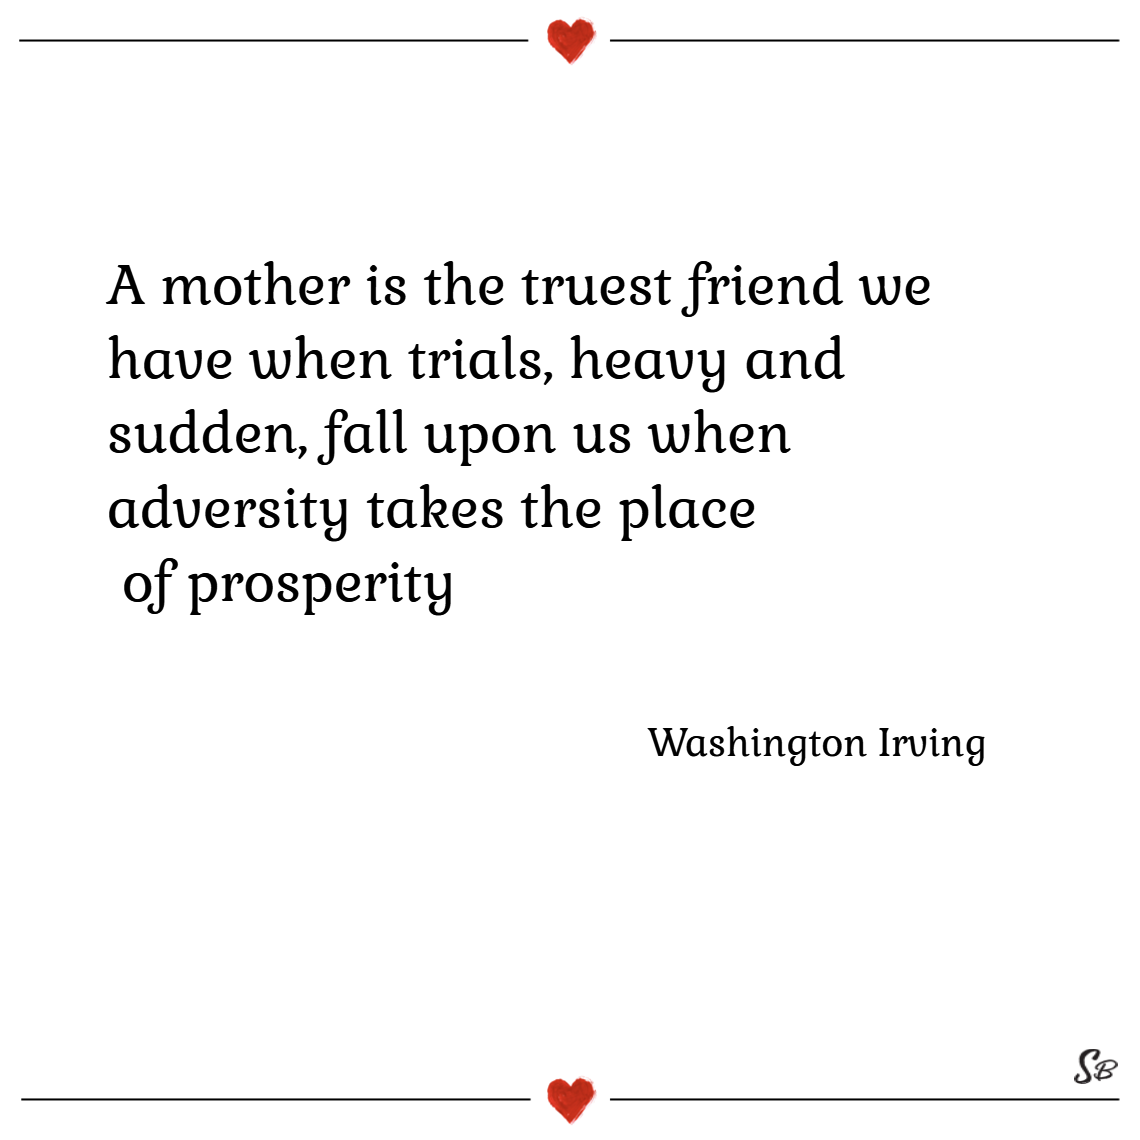 A mother is the truest friend we have when trials, heavy and sudden, fall upon us when adversity takes the place of prosperity. – washington irving